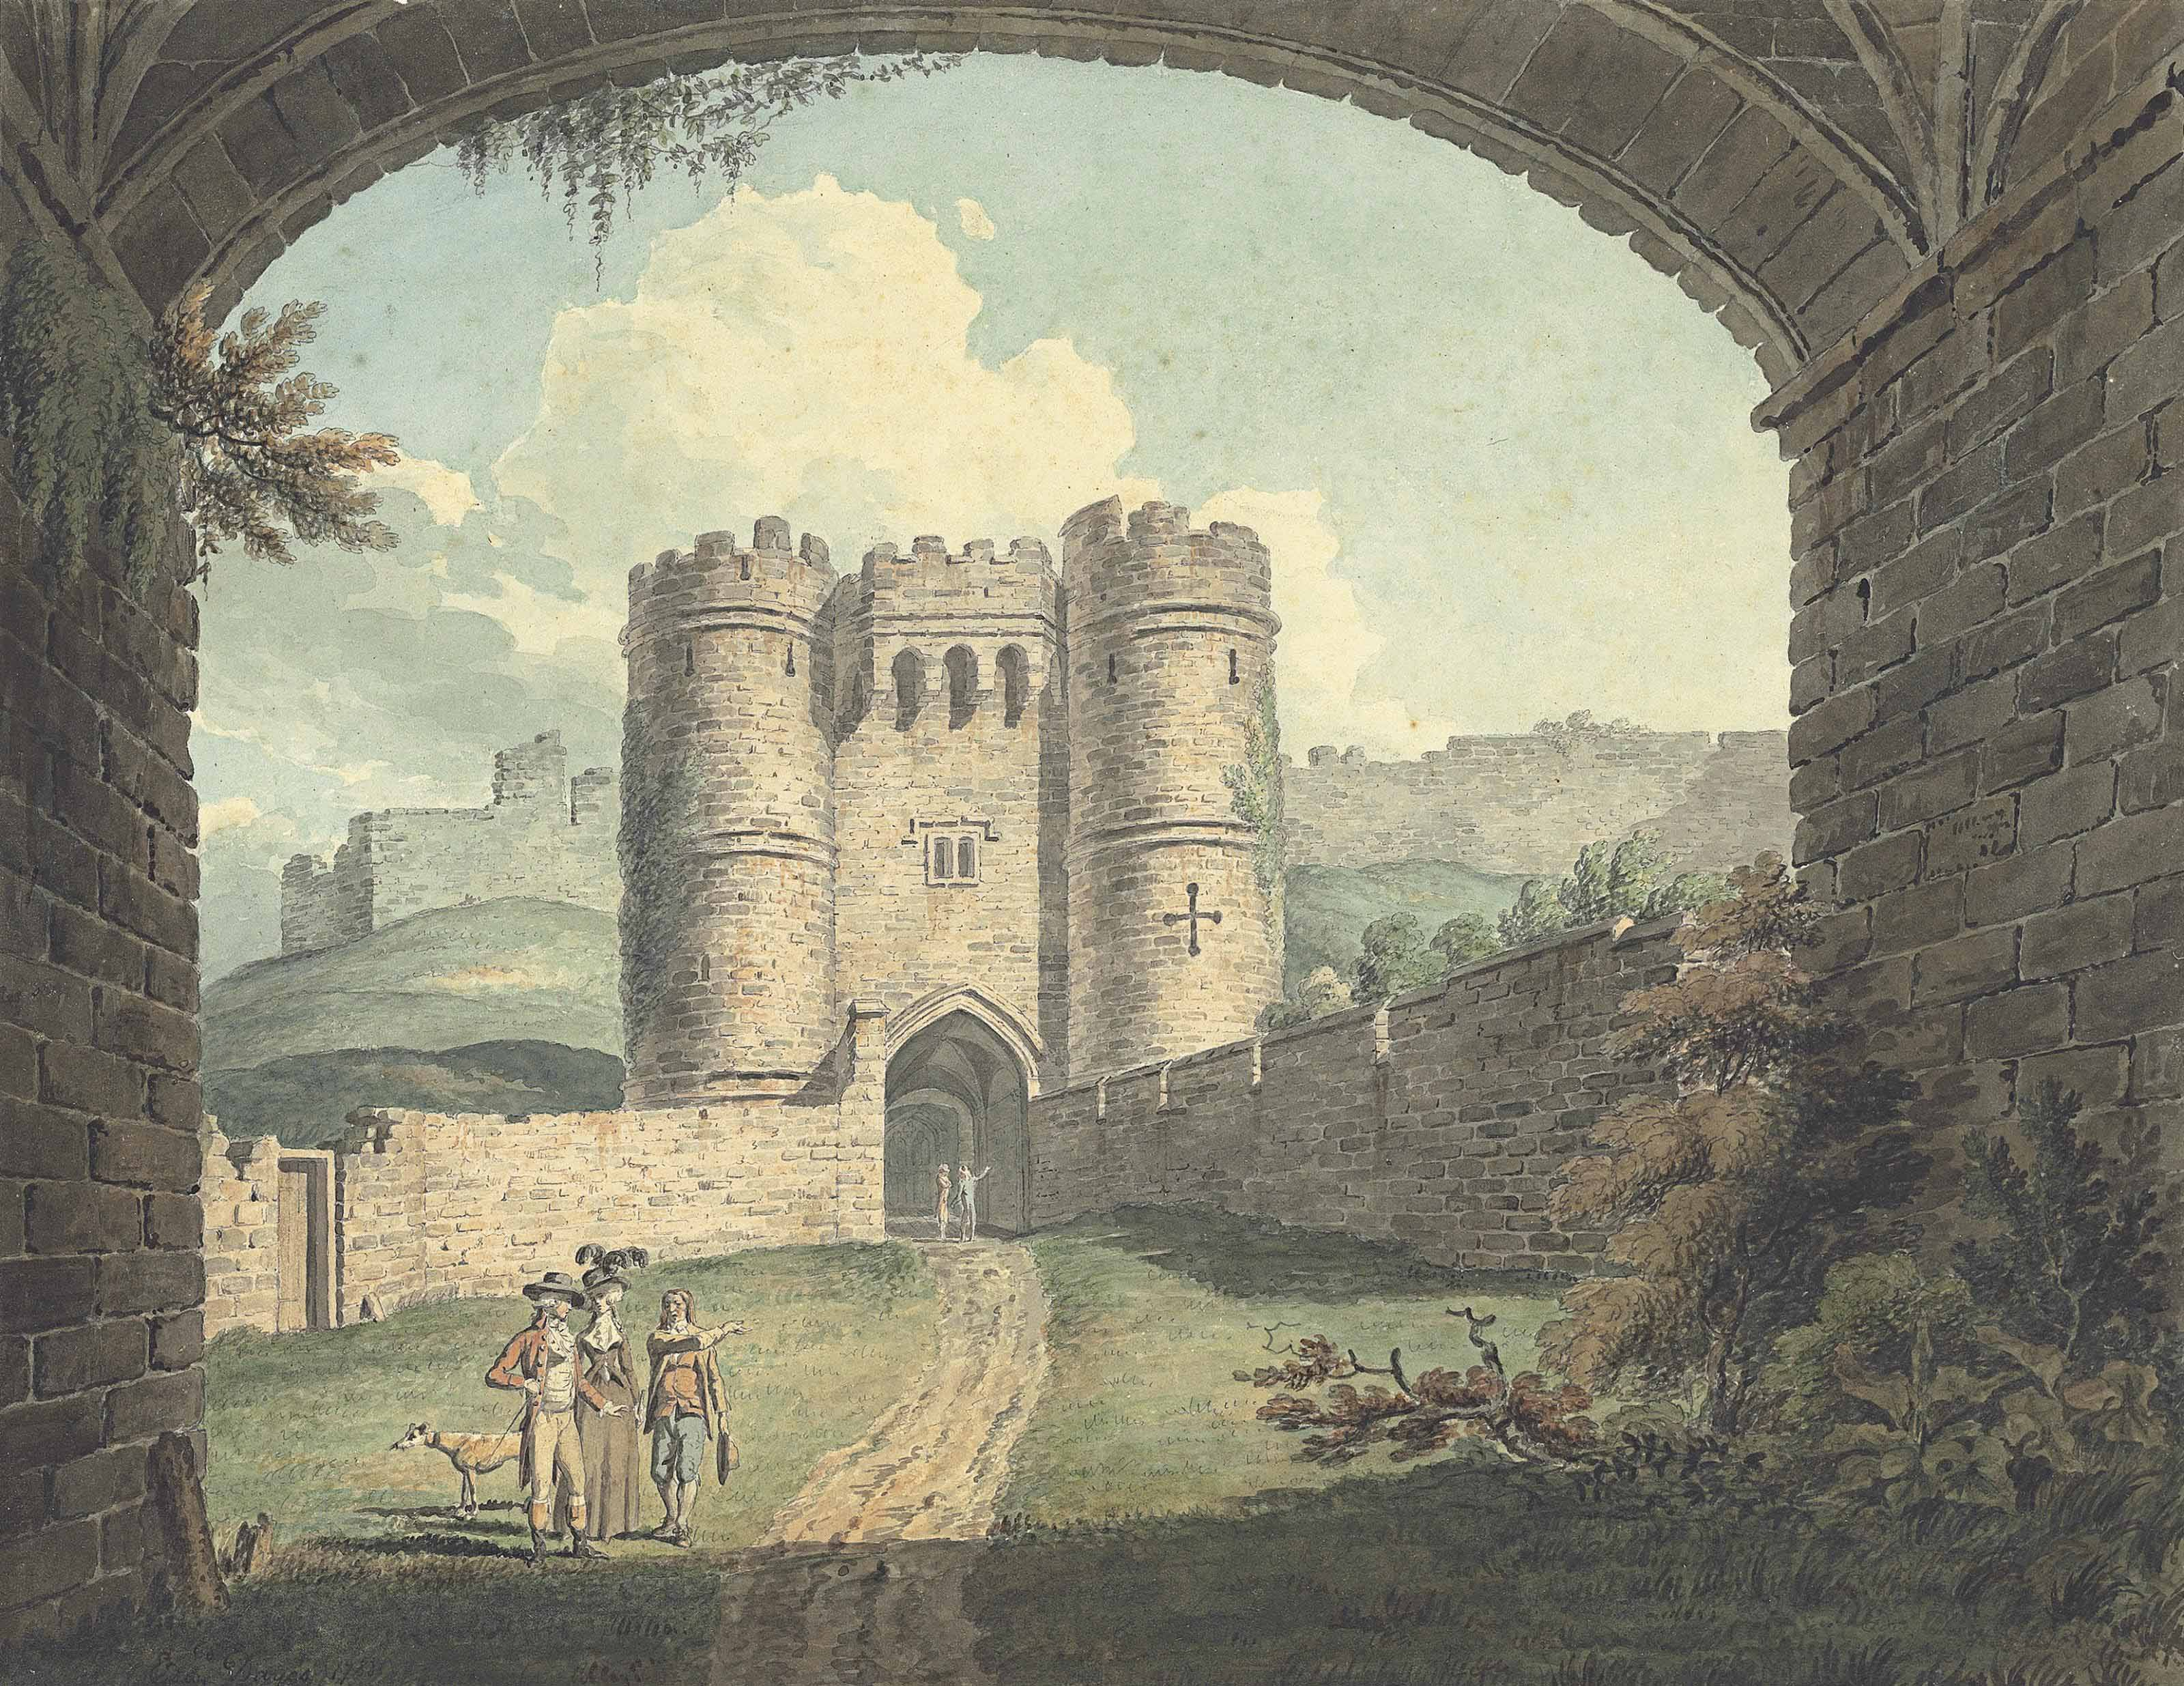 Carisbrooke Castle, Isle of Wight, seen through an archway, with elegant figures in the foreground